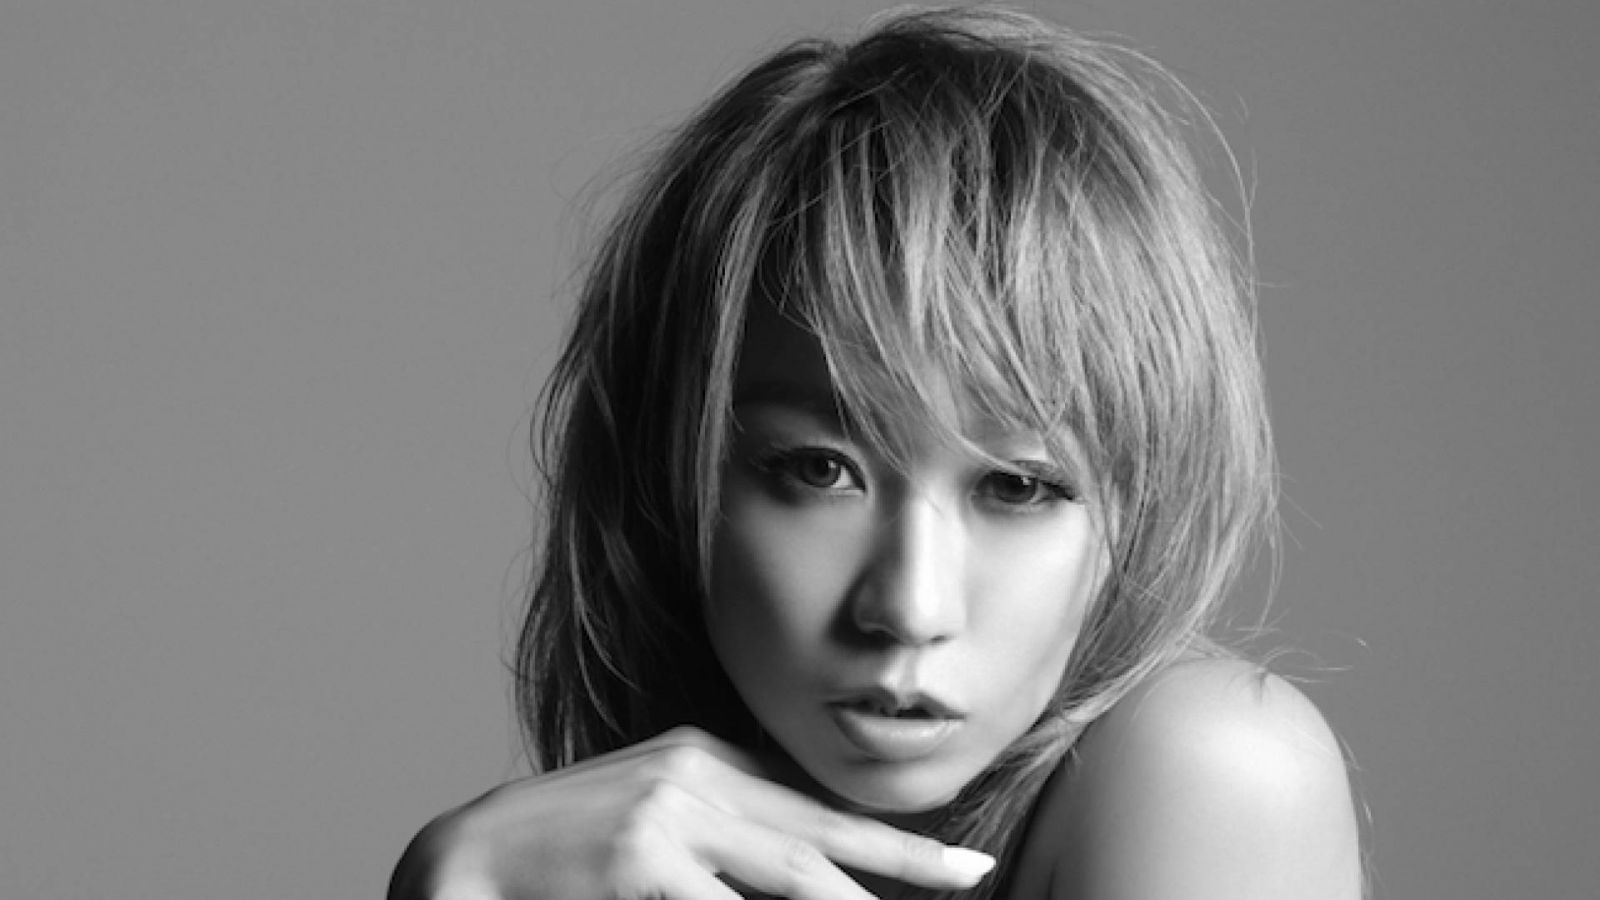 Nouvel album de Koda Kumi © © avex music creative Inc. All rights reserved.